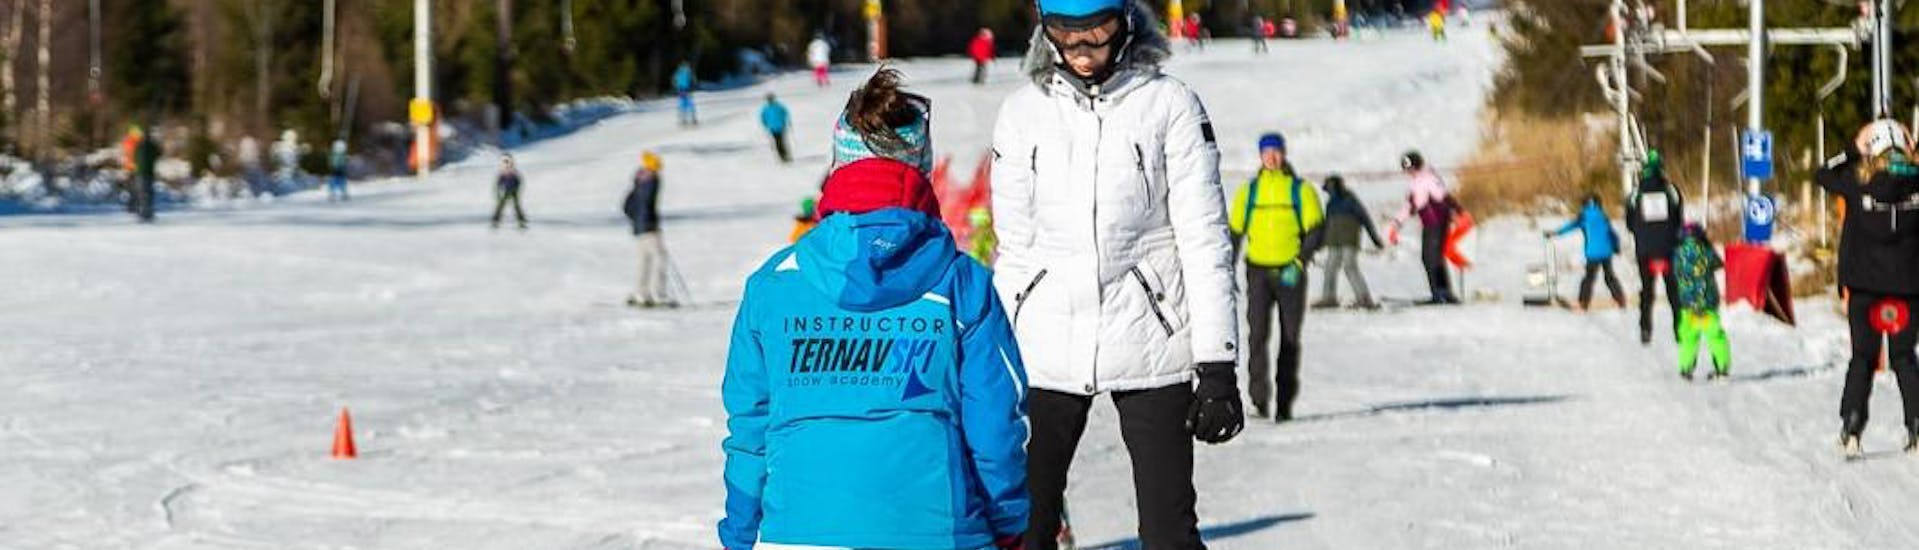 During the Ski Lessons for Adults - Long Lesson - All Levels, an adult is taking the first steps on skis under the supervision of an experienced ski instructor from the ski school Ternavski Snow Academy Tatranska Lomnica.